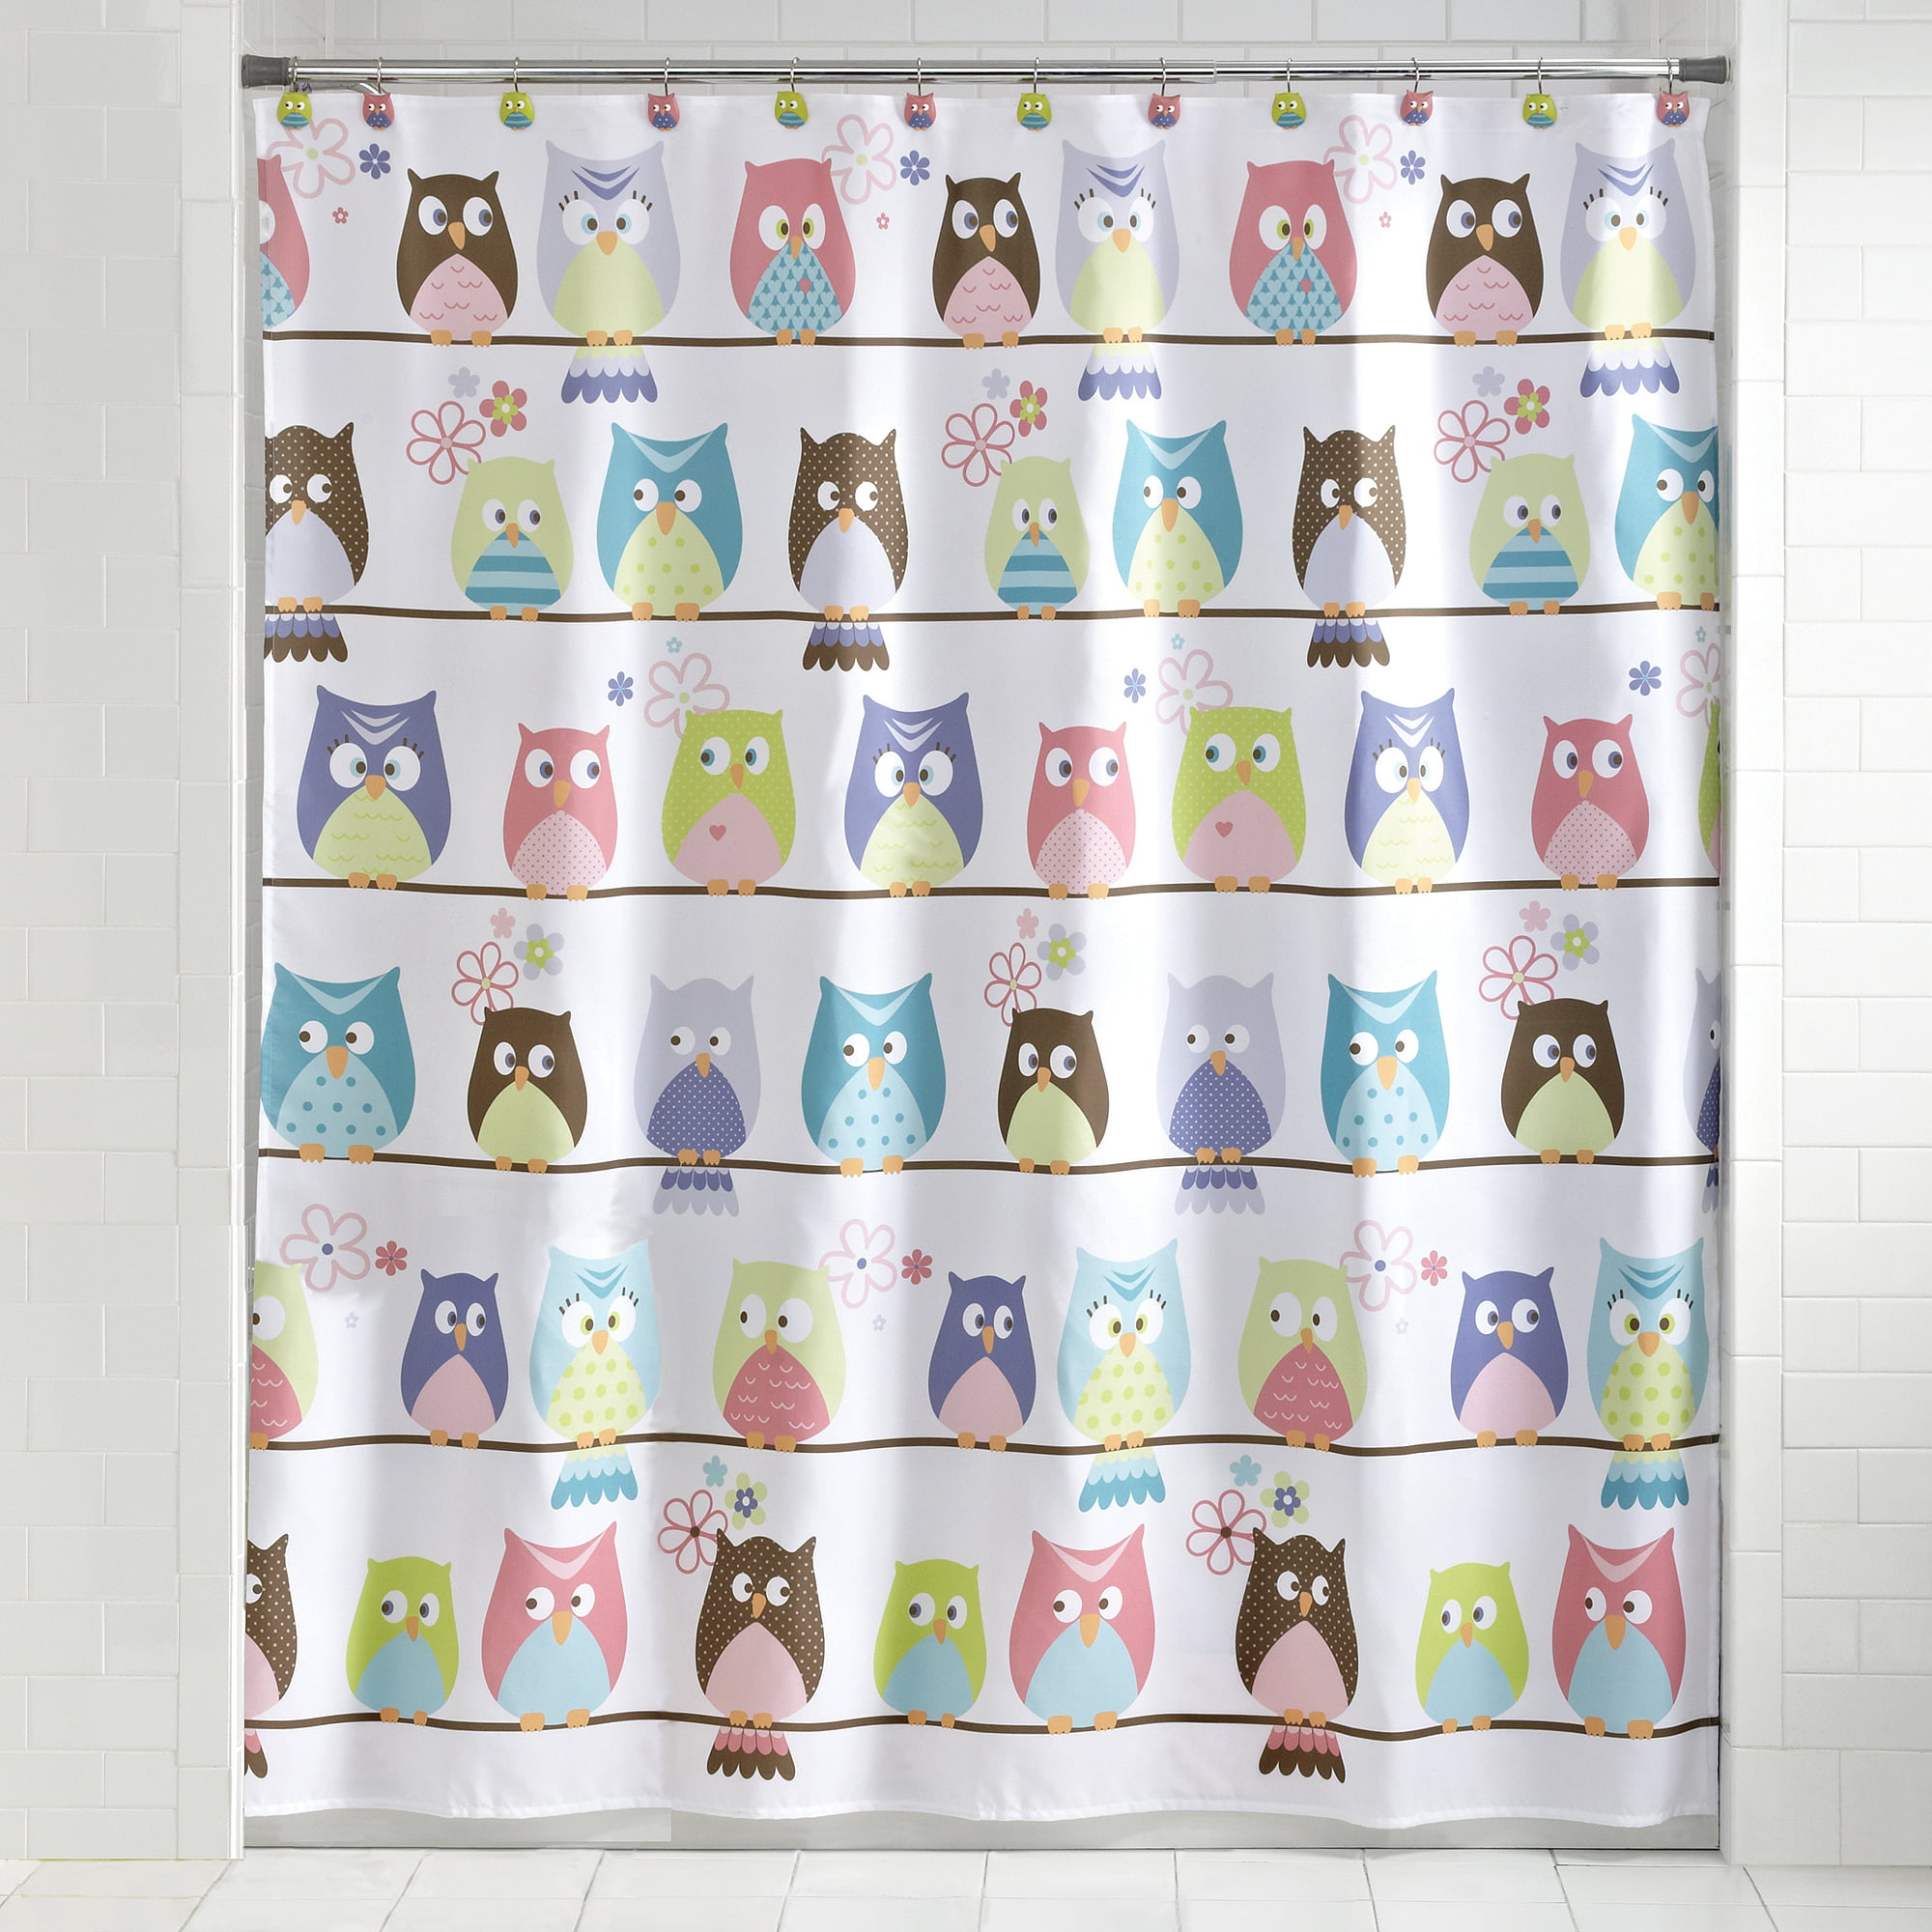 Owl shower curtains - Mainstays Whooty Hoot Decorative Bath Collection Shower Curtain Walmart Com